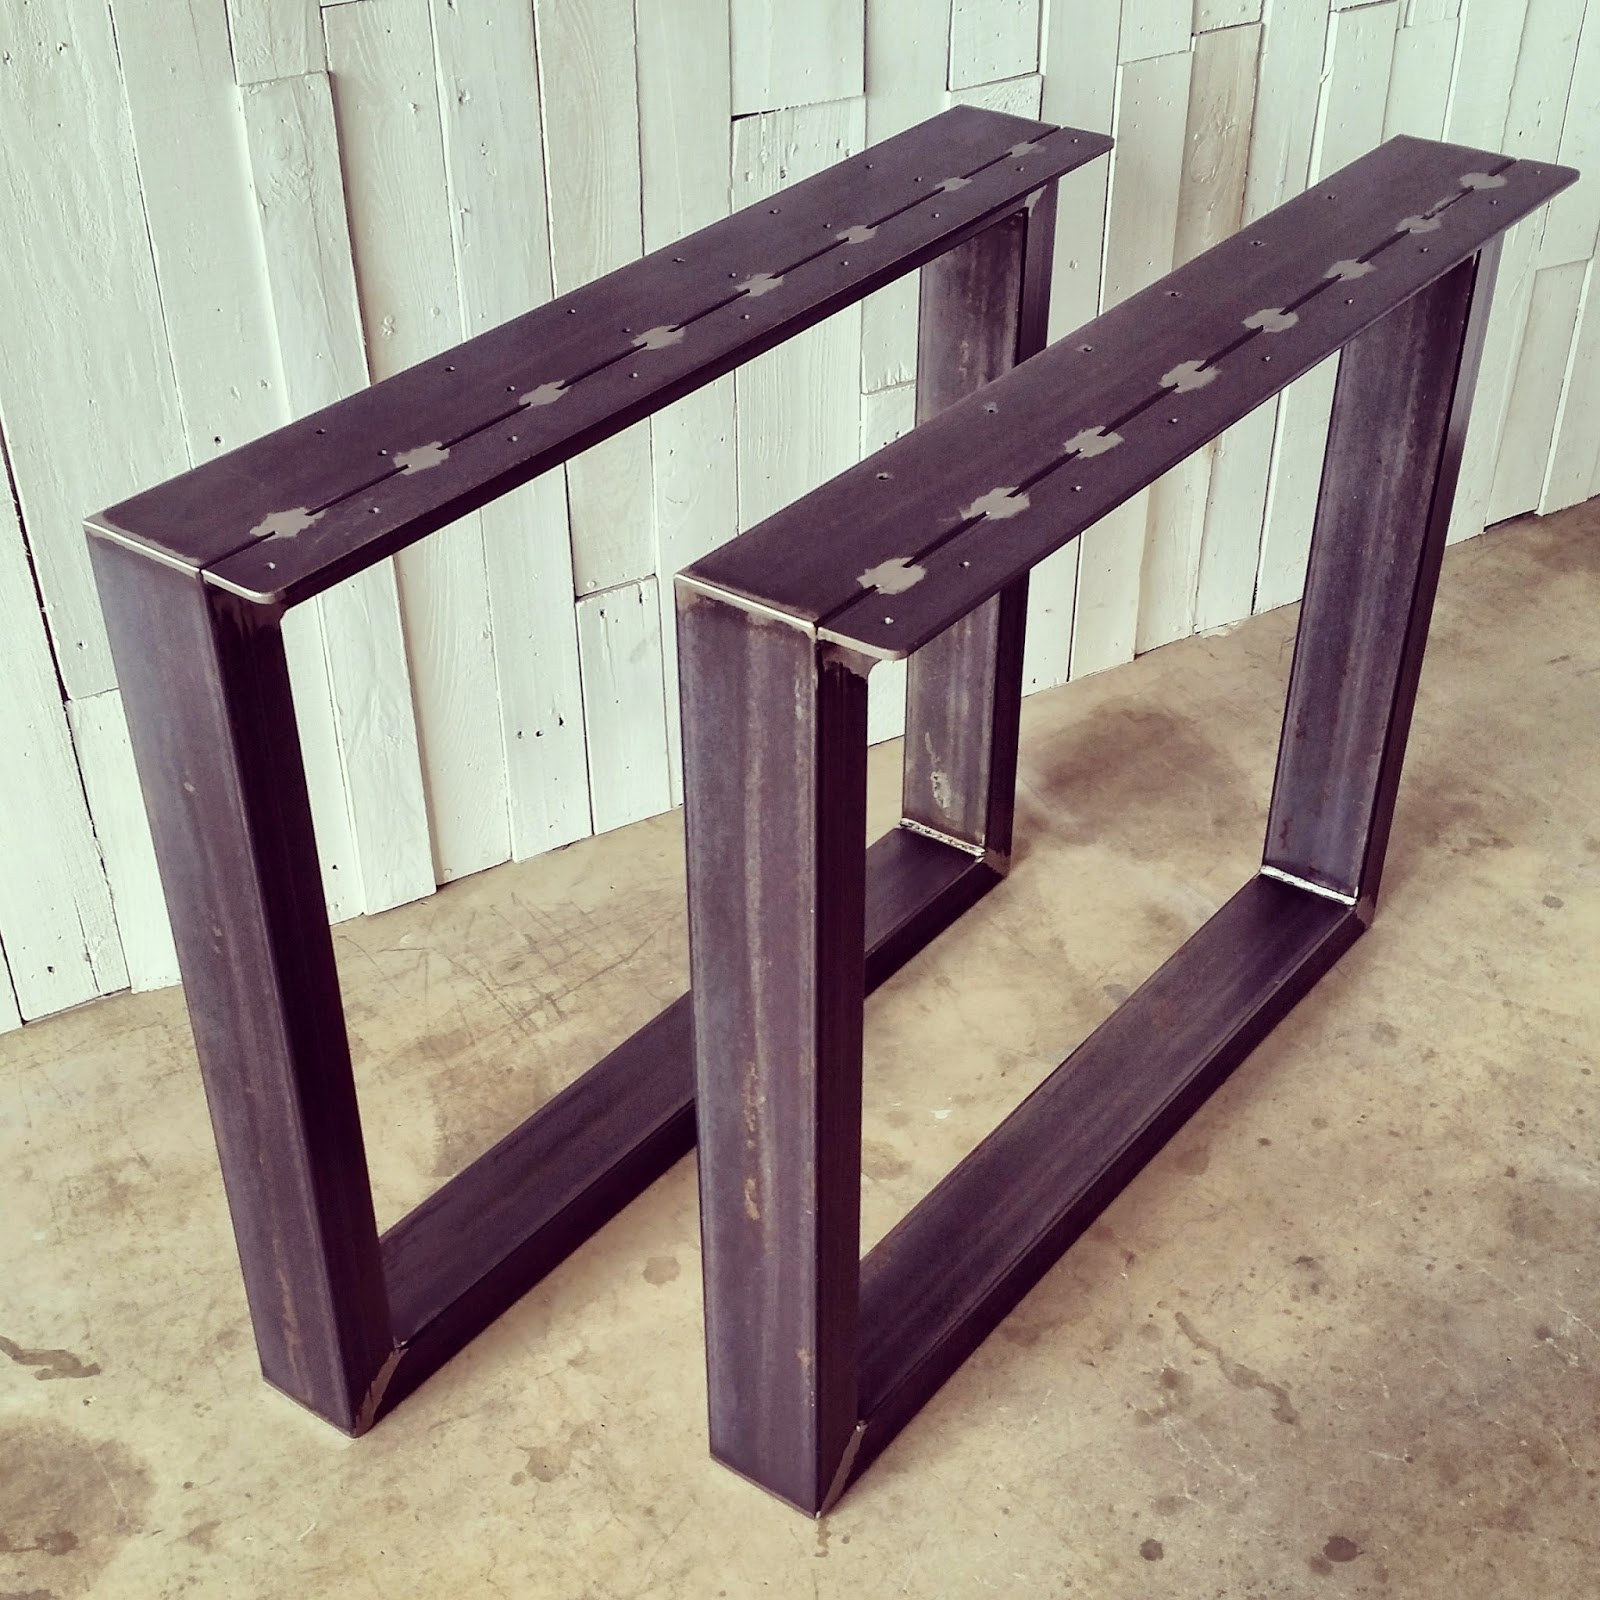 urban ironcraft metal table legs and bases. Black Bedroom Furniture Sets. Home Design Ideas